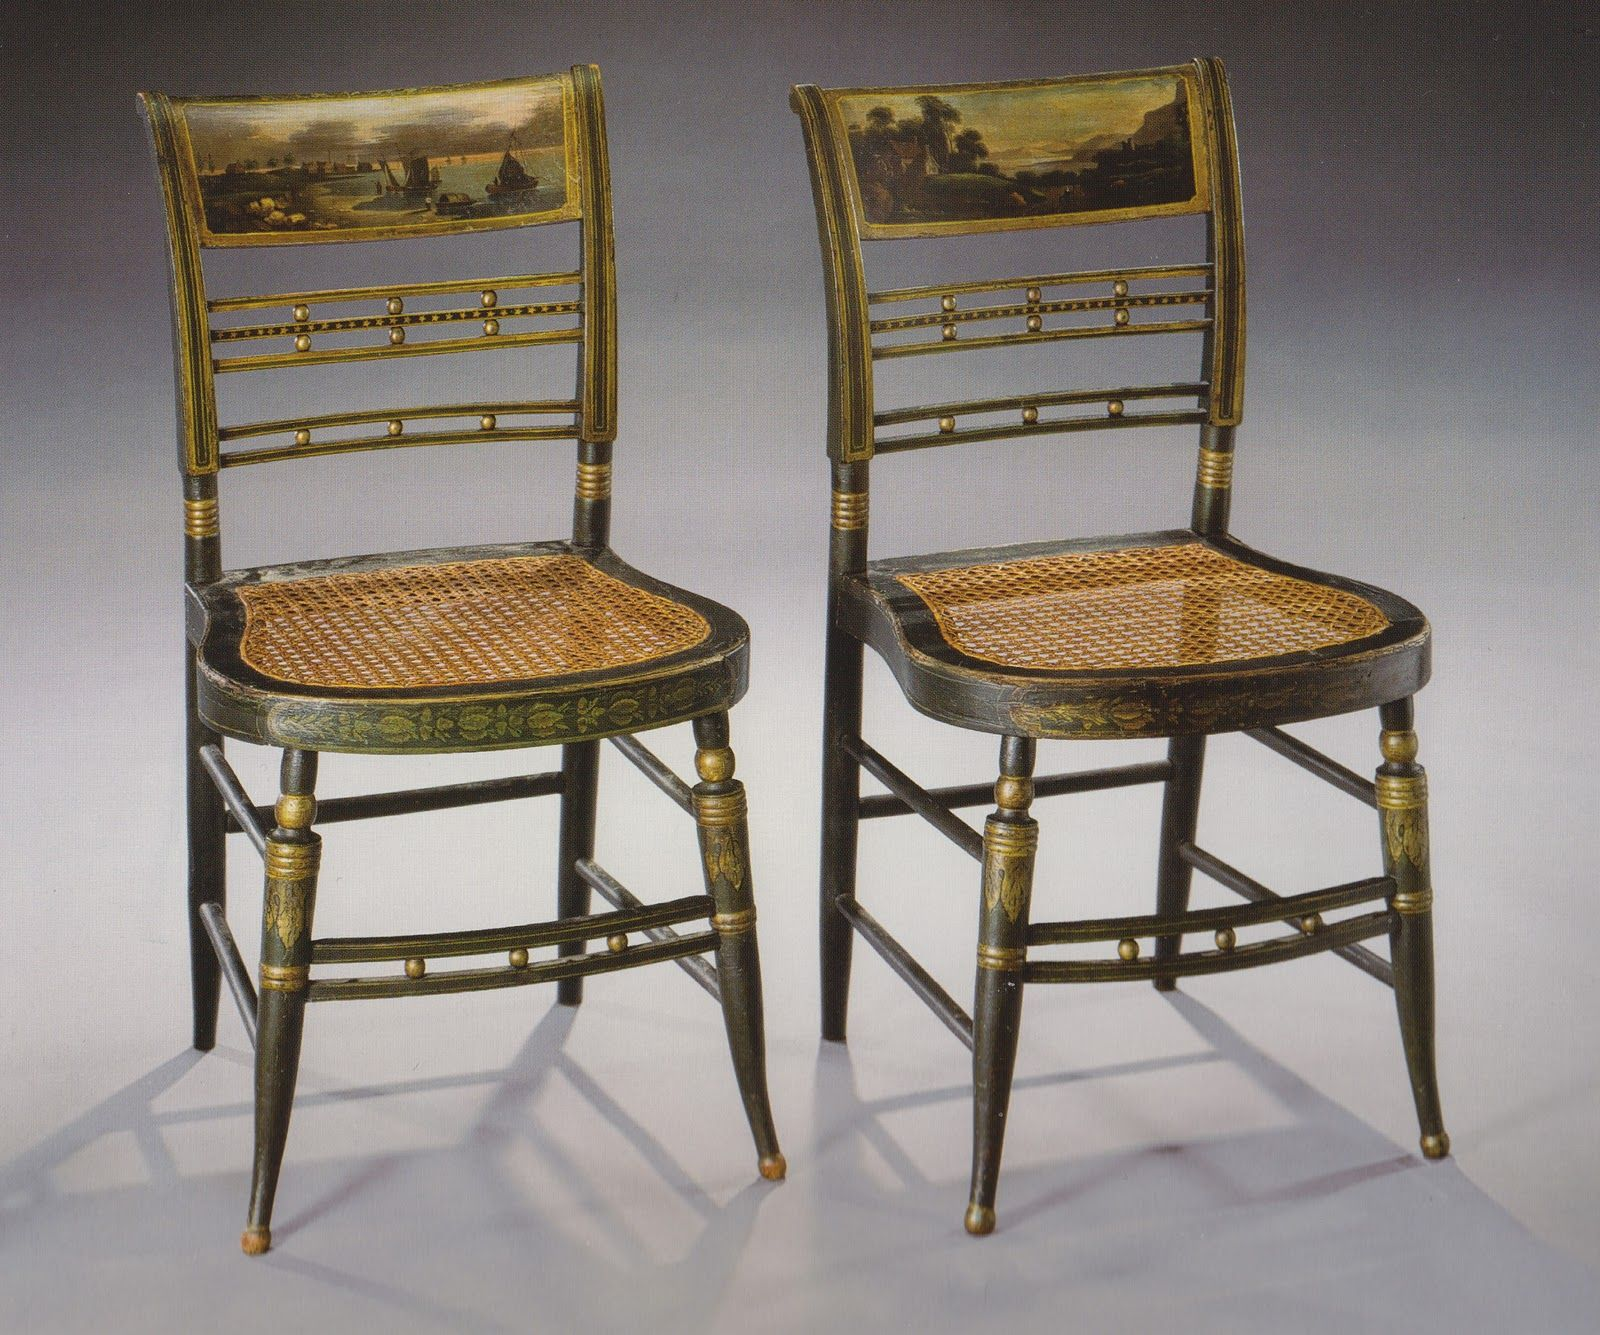 American Federal Paint Decorated Fancy Side Chairs Landscape Scenes Painted On The Backs